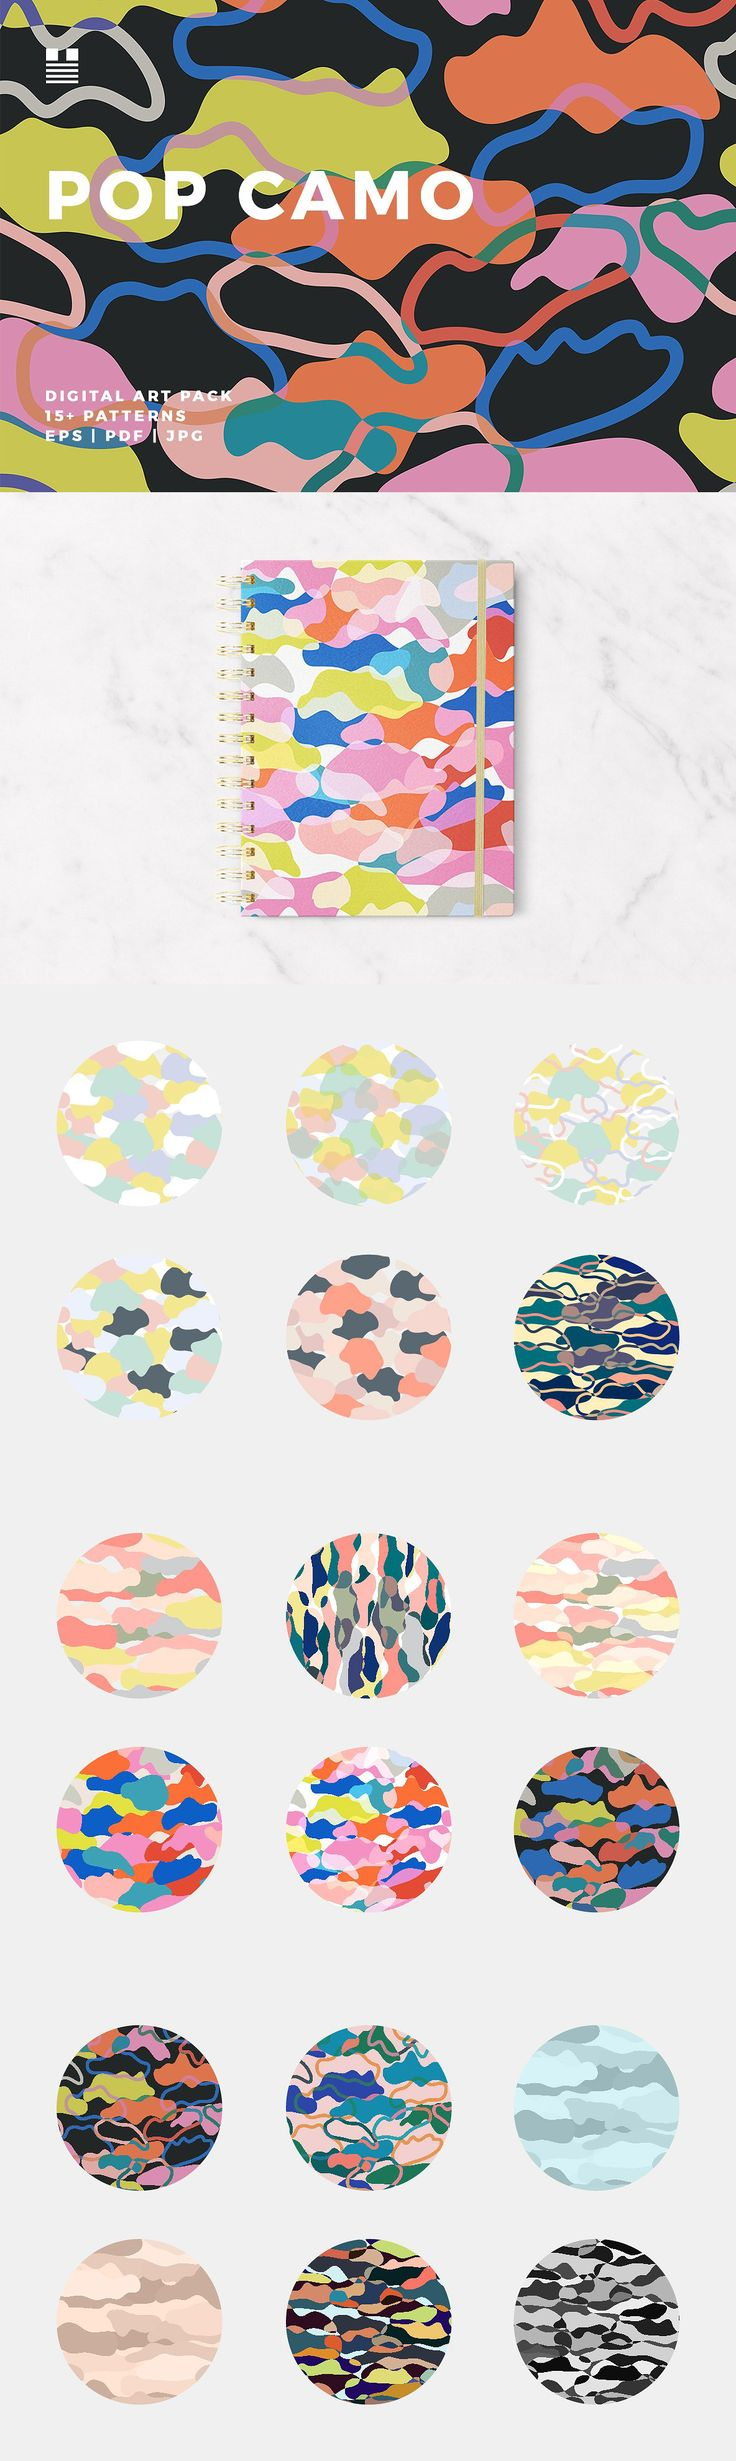 Enjoy this set of peace-lovin' contemporary camo-style patterns. The designs are in soft pastels and bold bright colorways. Use these patterns for packaging, invitations, cards, gift wrap, wallpaper, notebook and book covers, social media banners, blog headers, Instagram posts, flyers, posters, fabric prints, stationery, collage, photo layering and masking, within typographic designs, etc. Set includes 19 seamless patterns. Image files are 16″x16″ EPS, PDF and JPG files. An affiliate link.